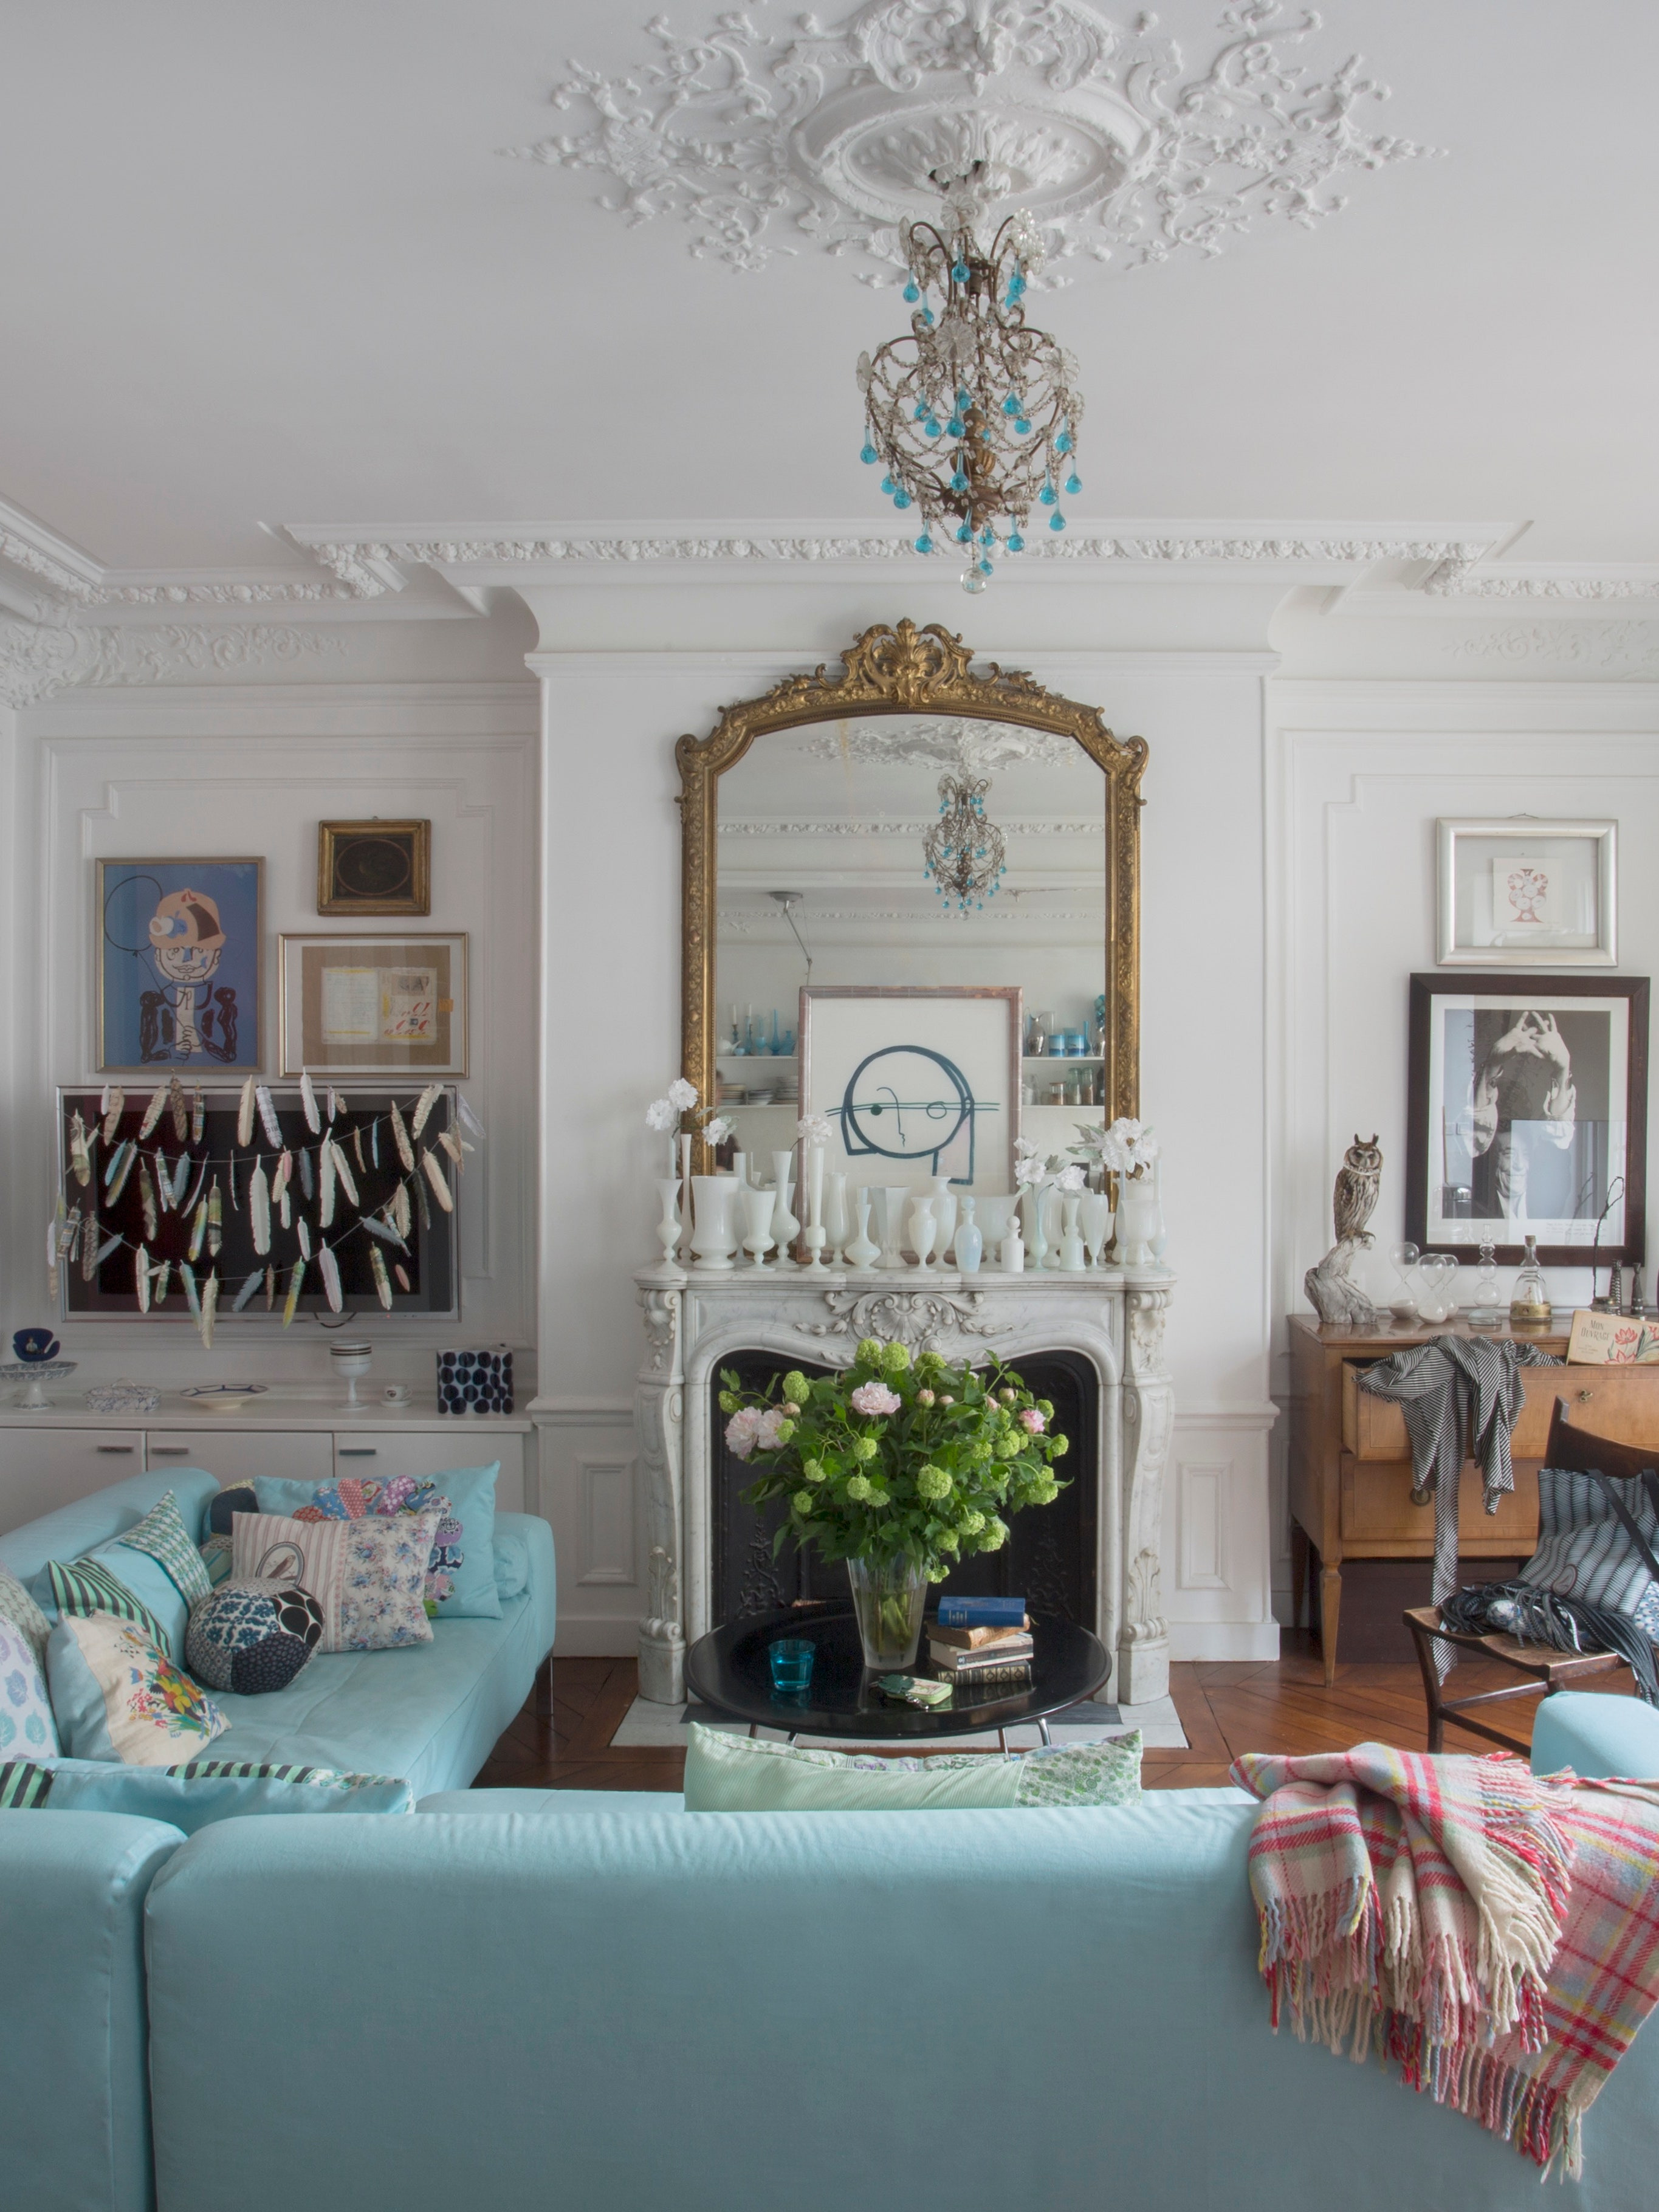 Most Beautiful Home Interiors In the World Inspirational the World S Most Beautiful Bohemian Interiors